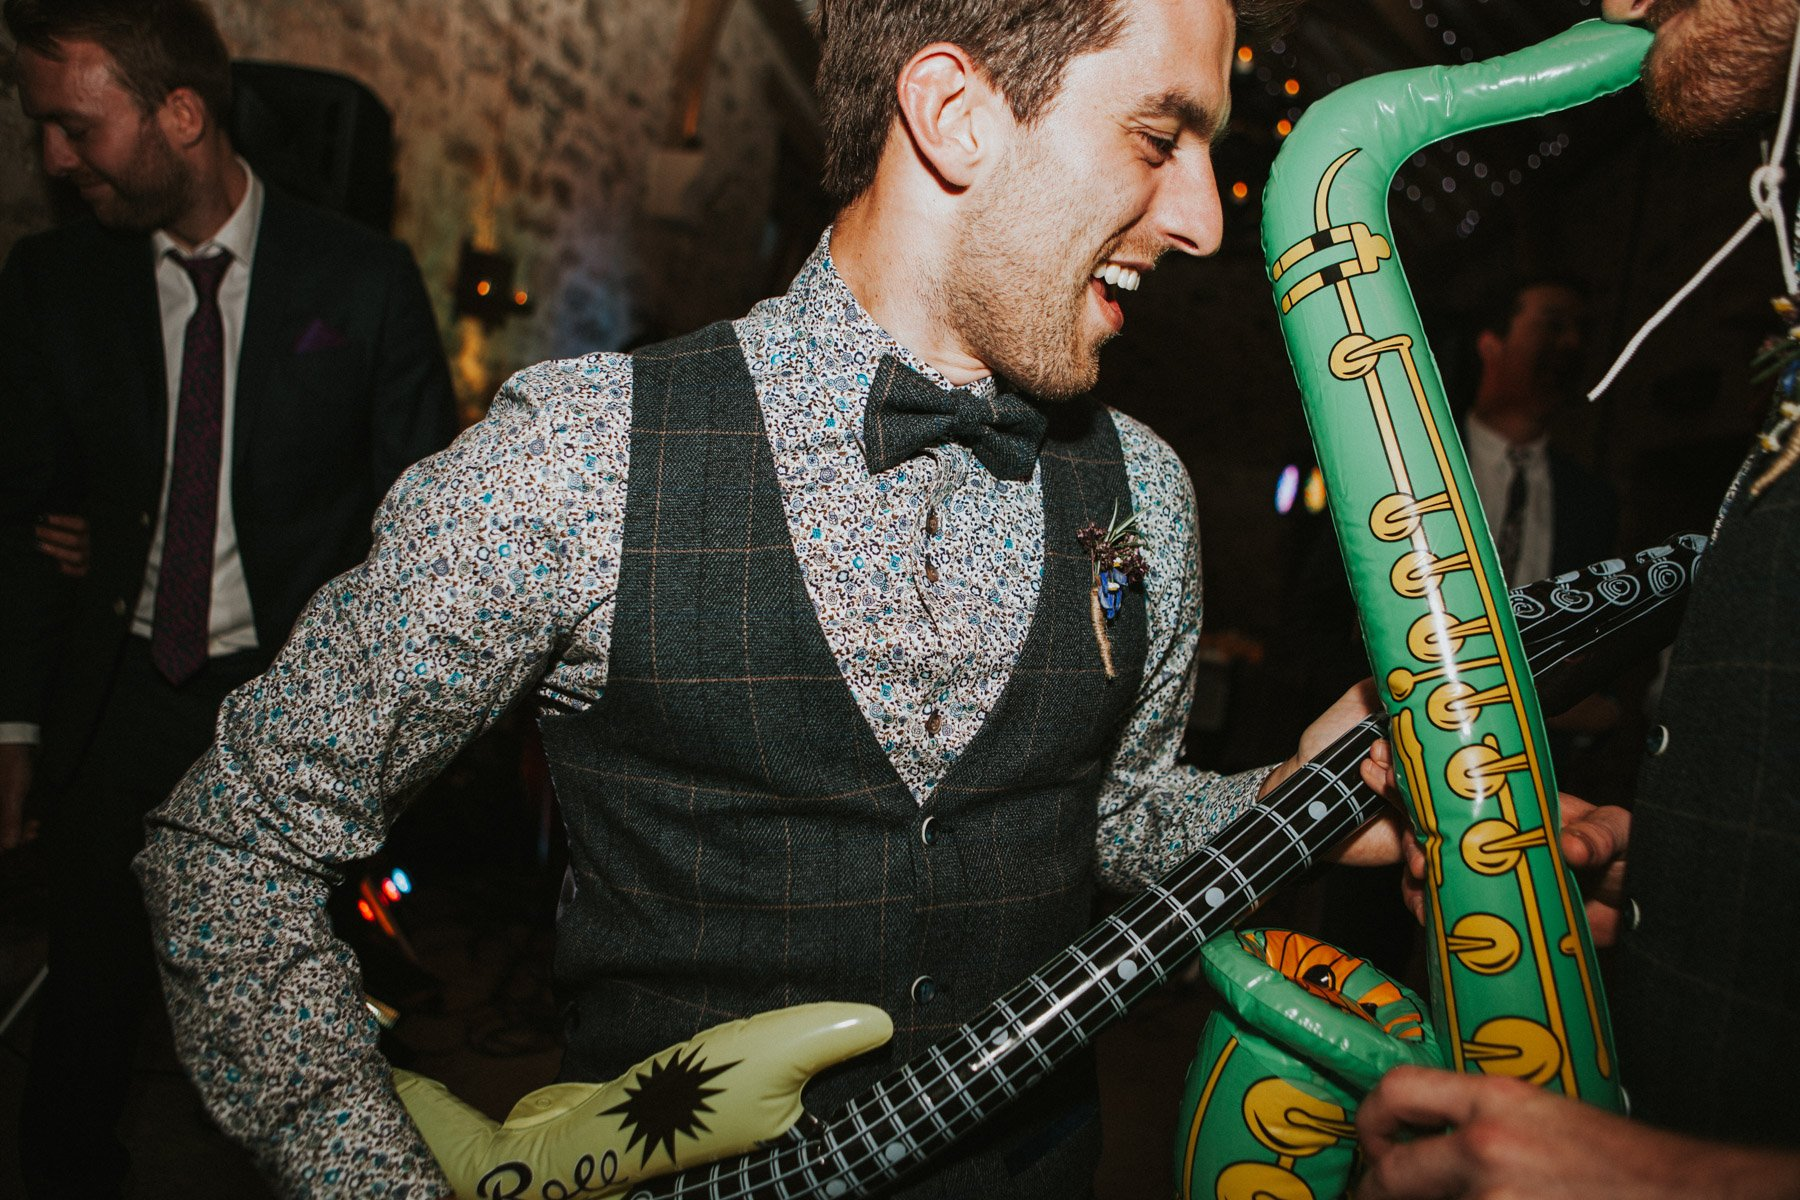 Healey Barn Wedding - Groomsmen Dances with inflatable instruments